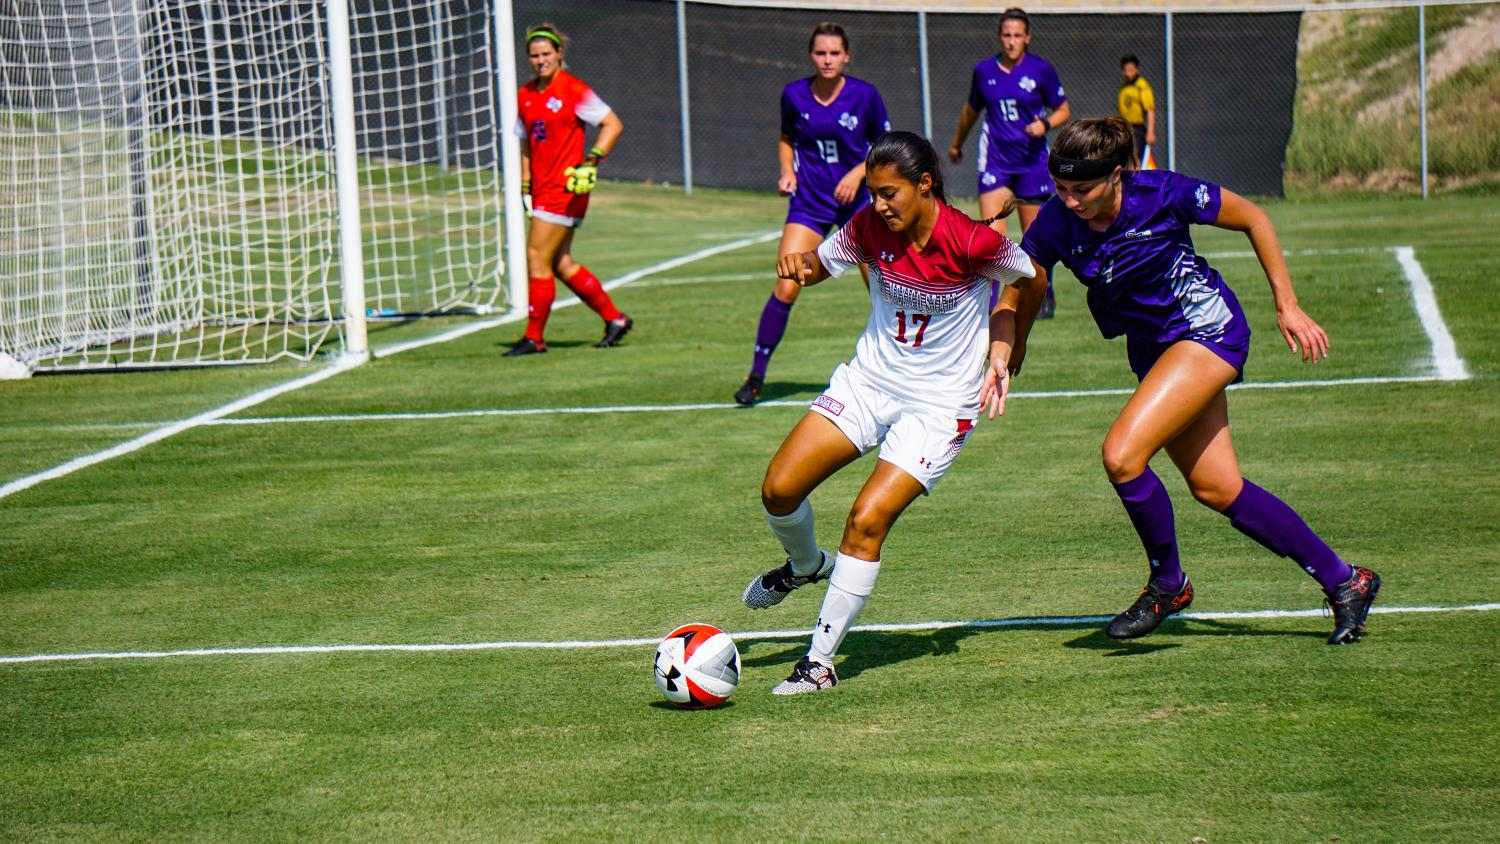 NMSU fell to Stephen F. Austin 1-0 Friday afternoon at the Soccer Complex.